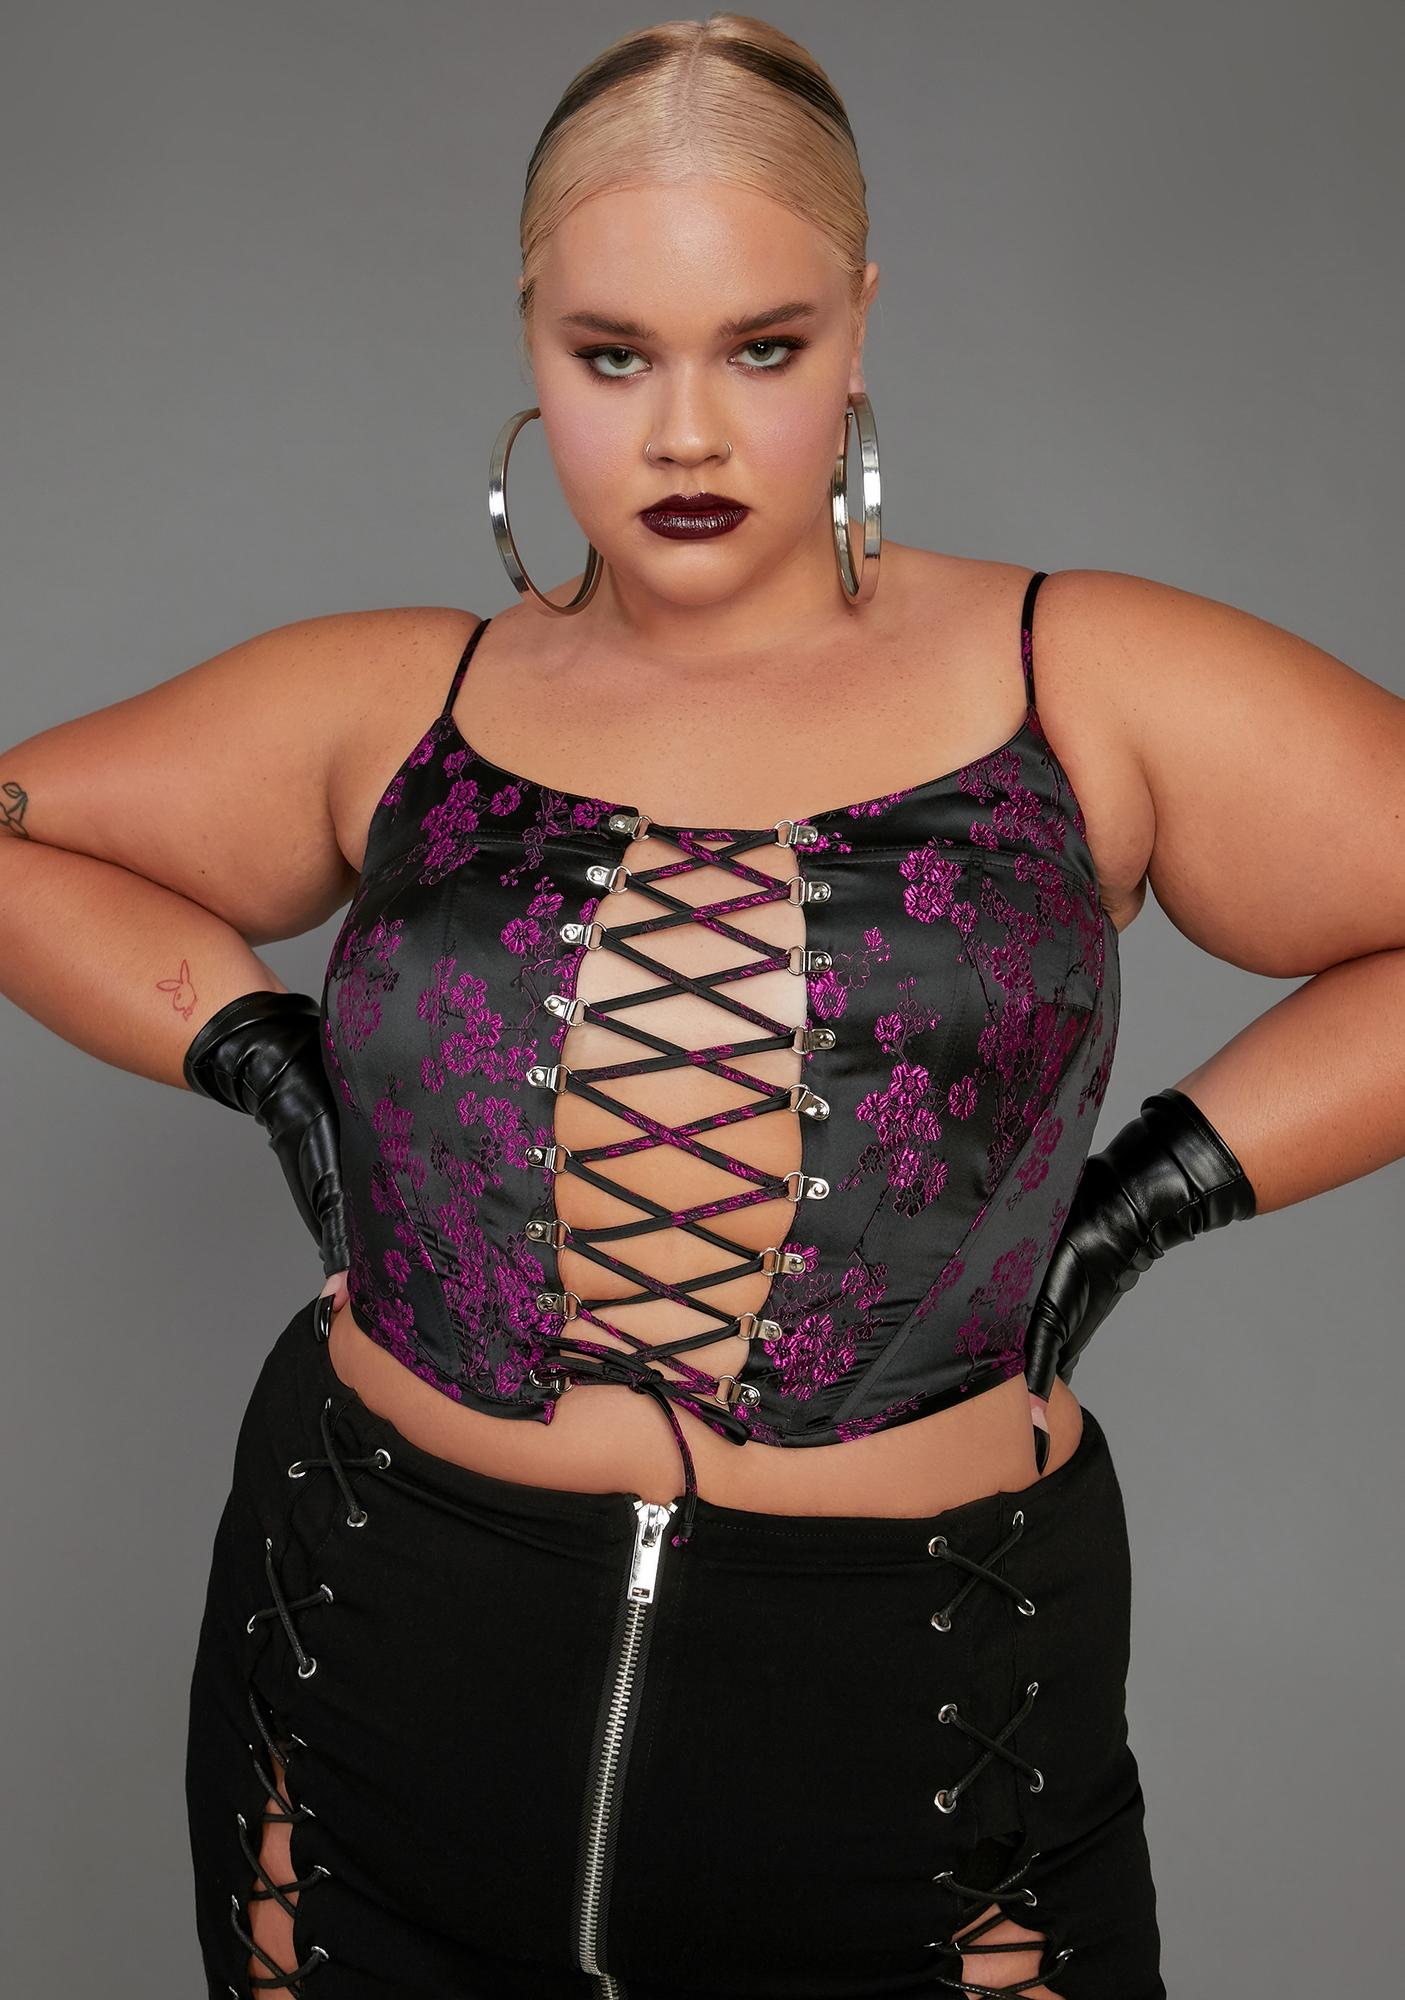 Poster Grl Real Undercover Influencer Corset Top